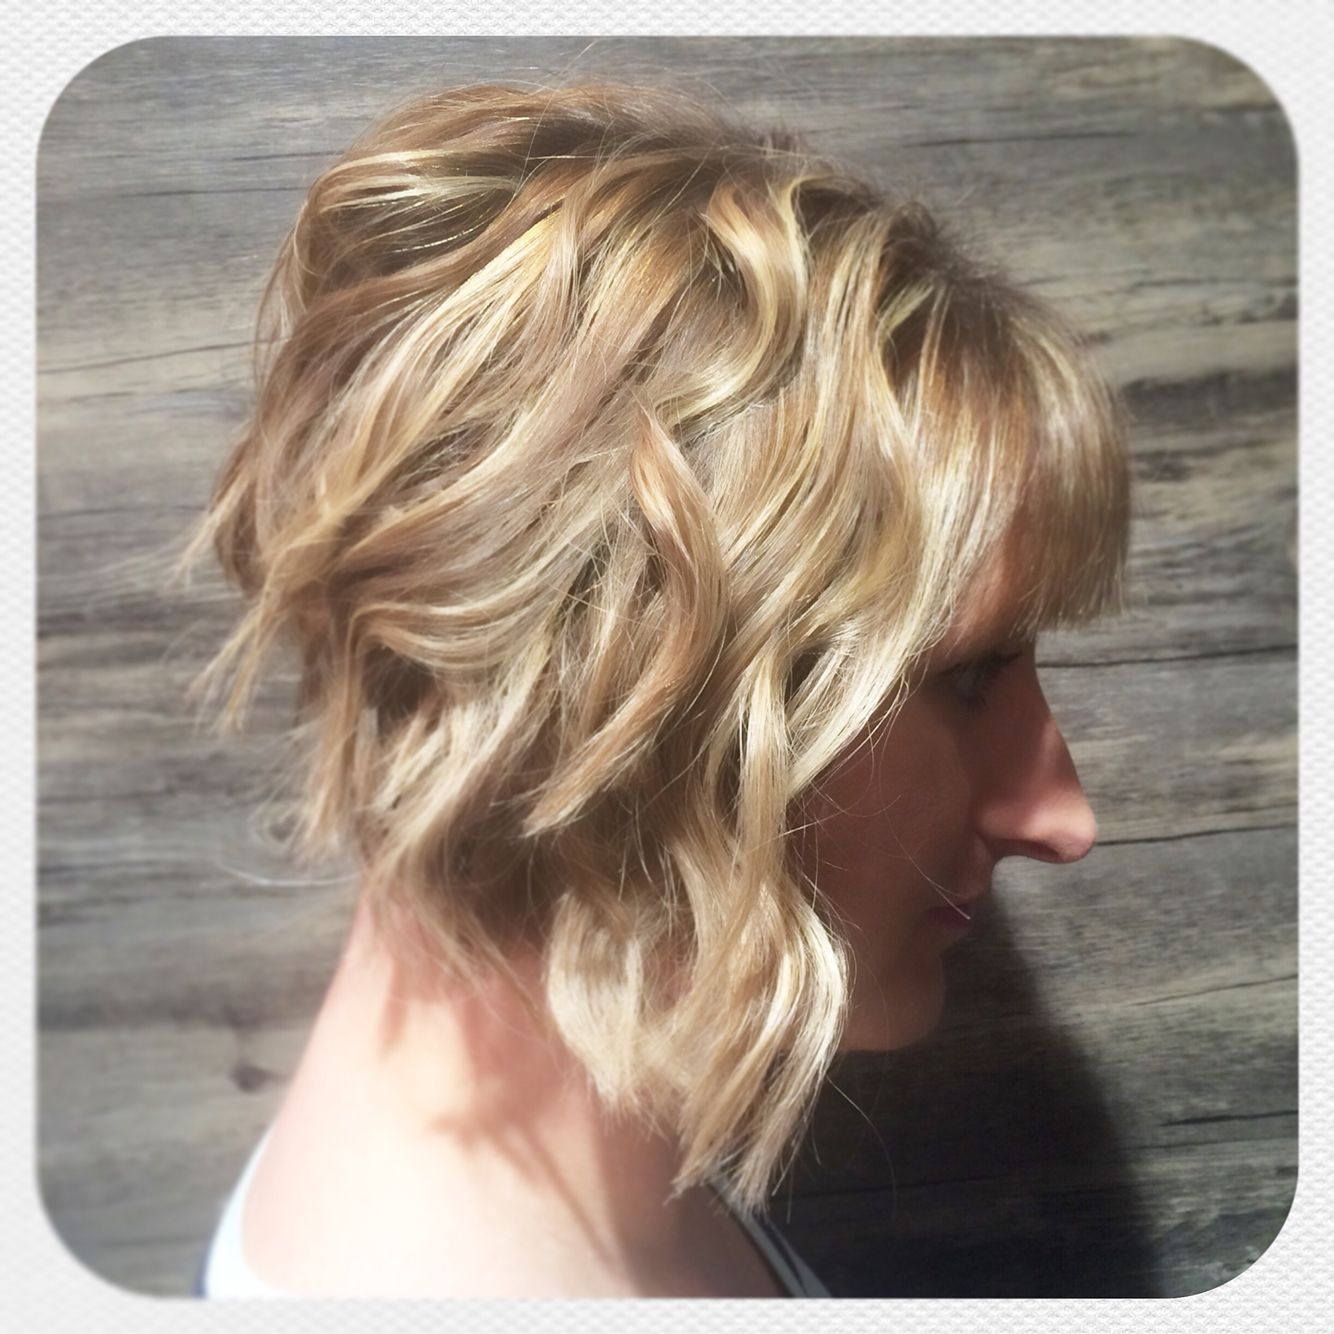 Summer Blonde And An Angled Textured Bob By Stylist Kylee